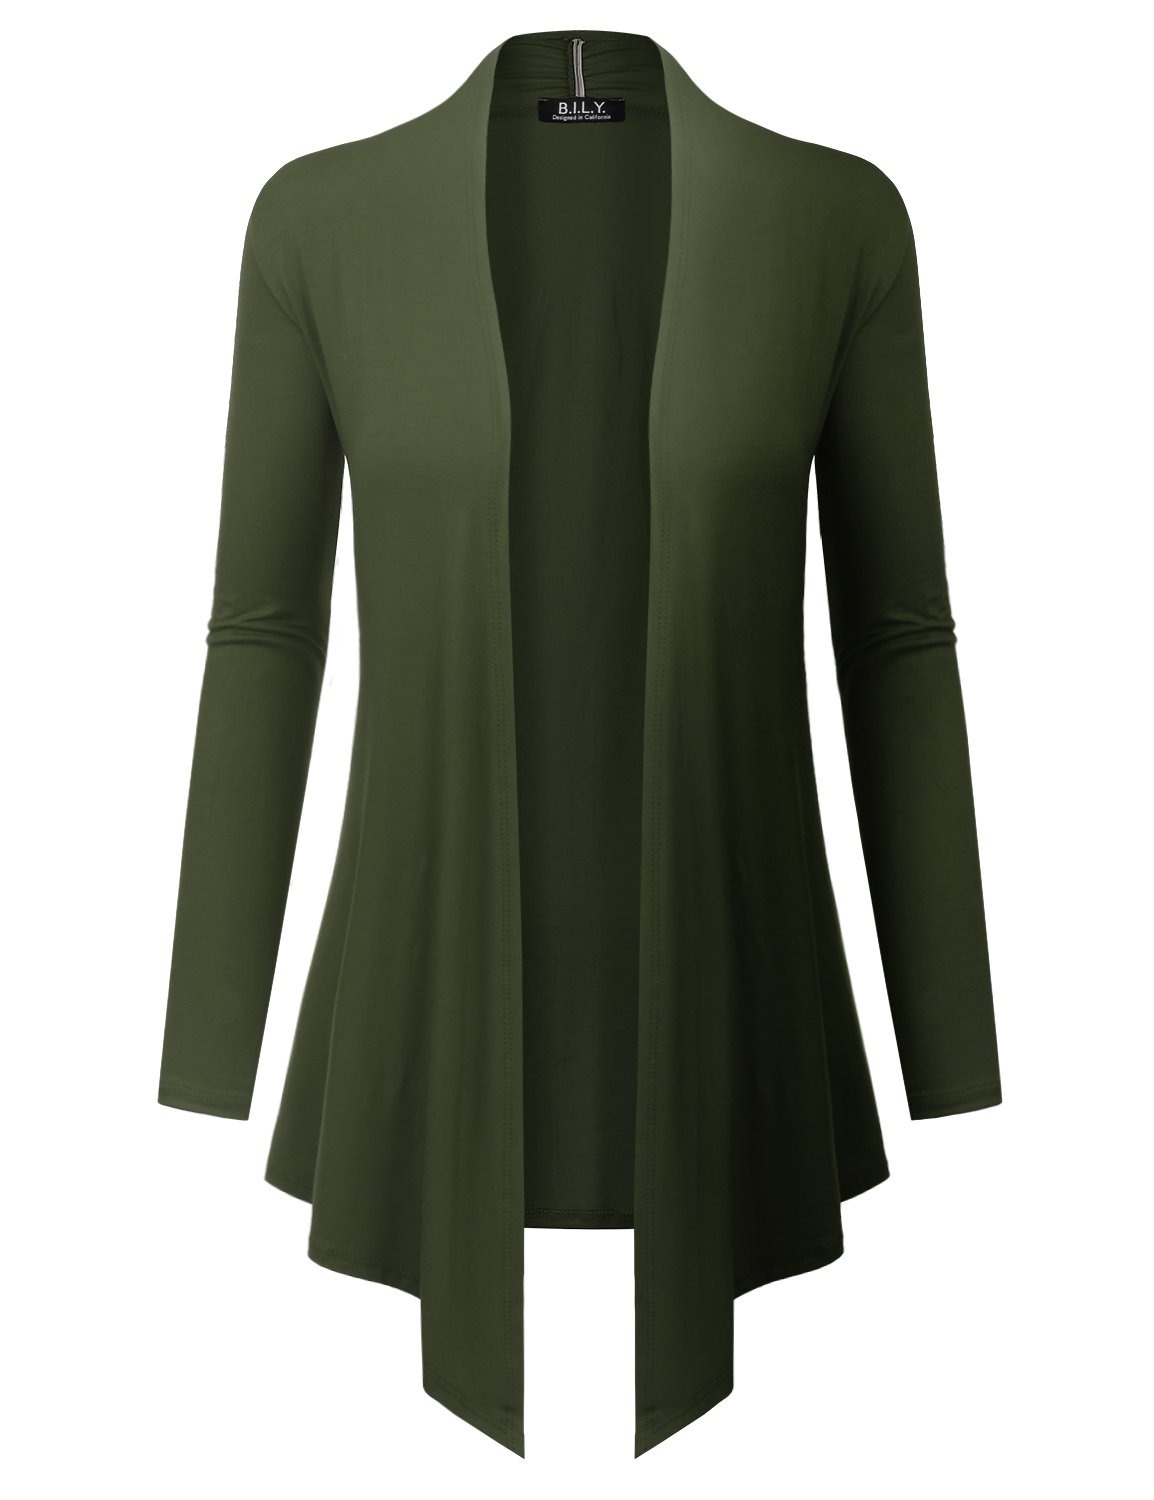 BH B.I.L.Y USA Women's Open Front Drape Hem Lightweight Cardigan with Pockets Olive XXX-Large by BH B.I.L.Y USA